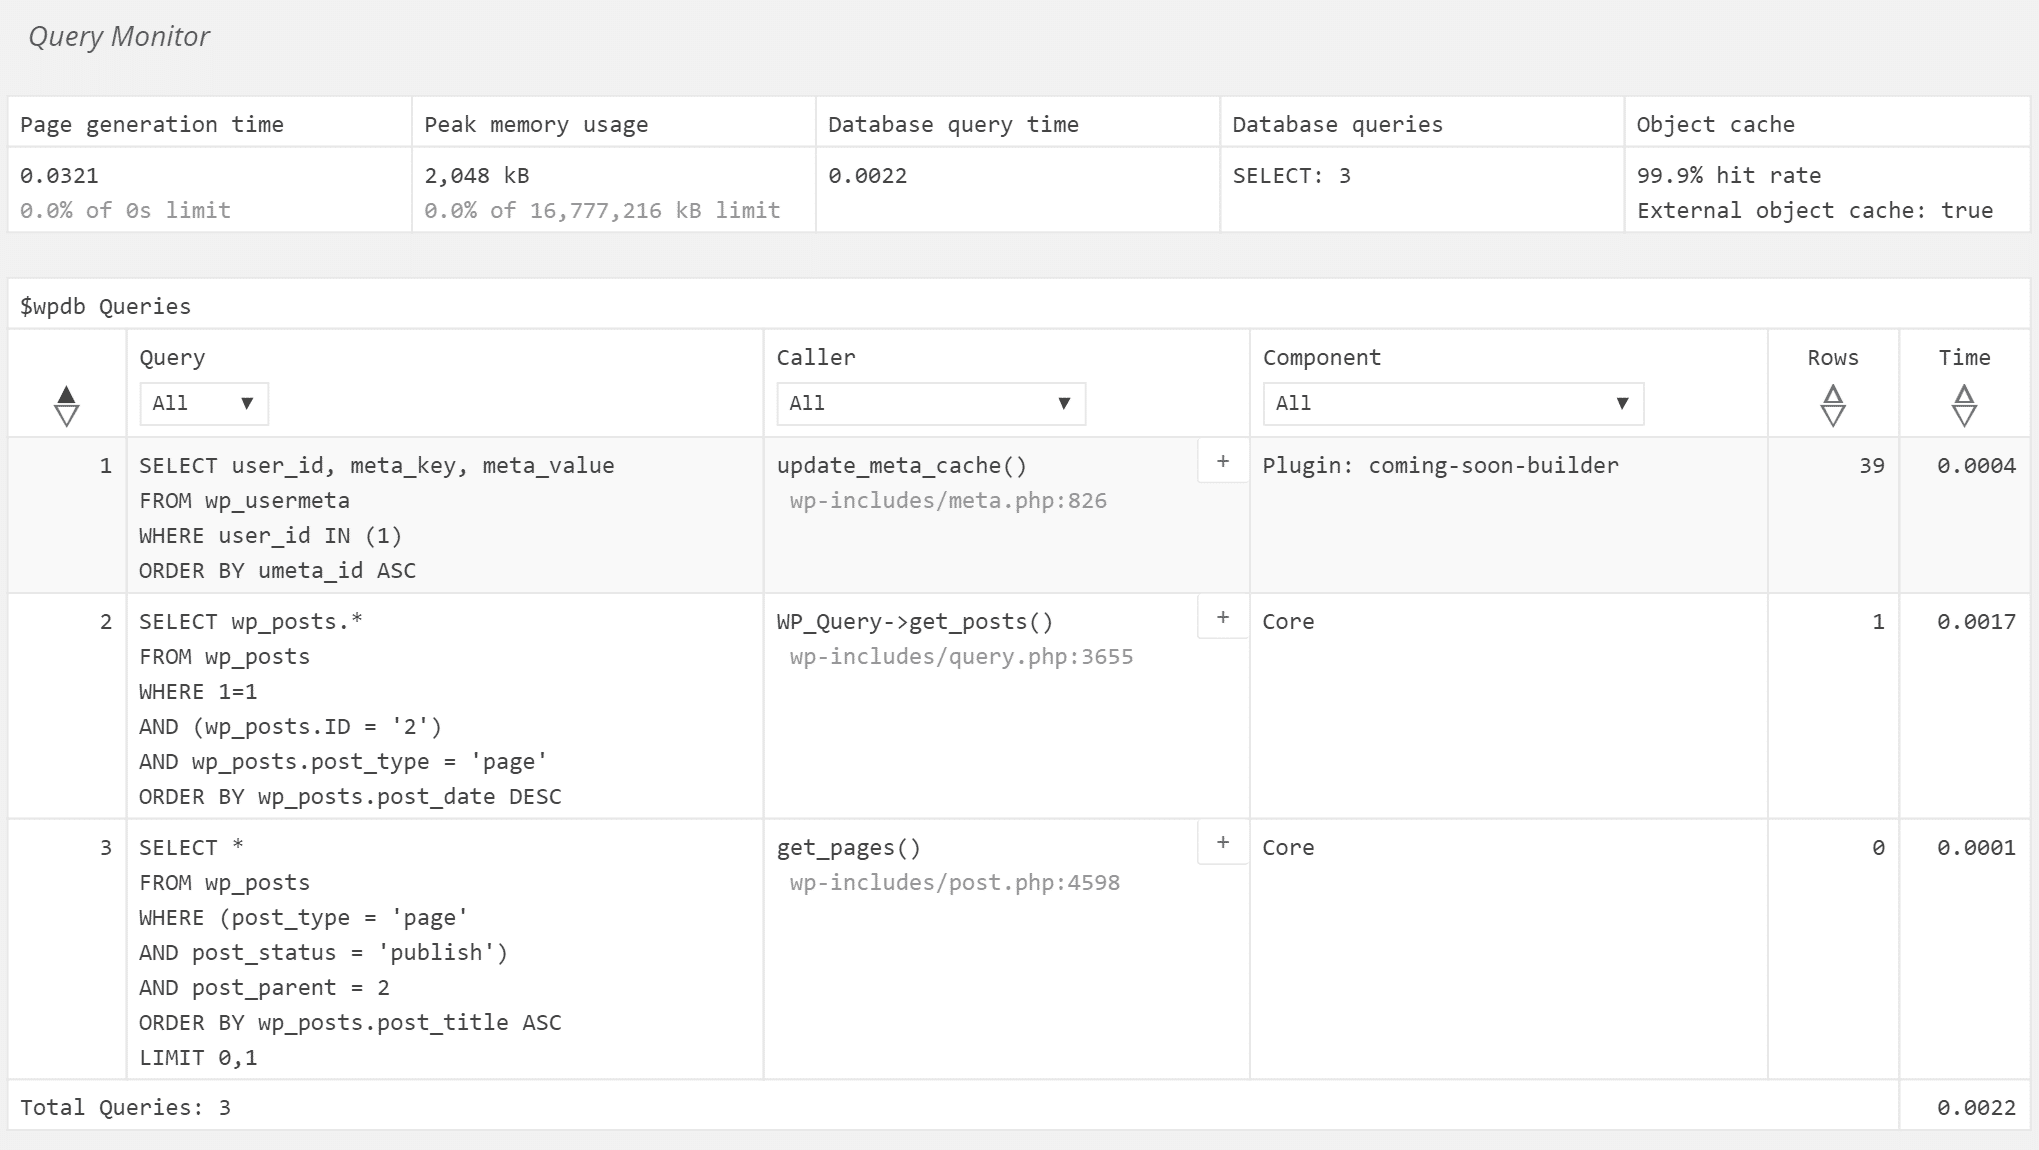 Queries de Query Monitor